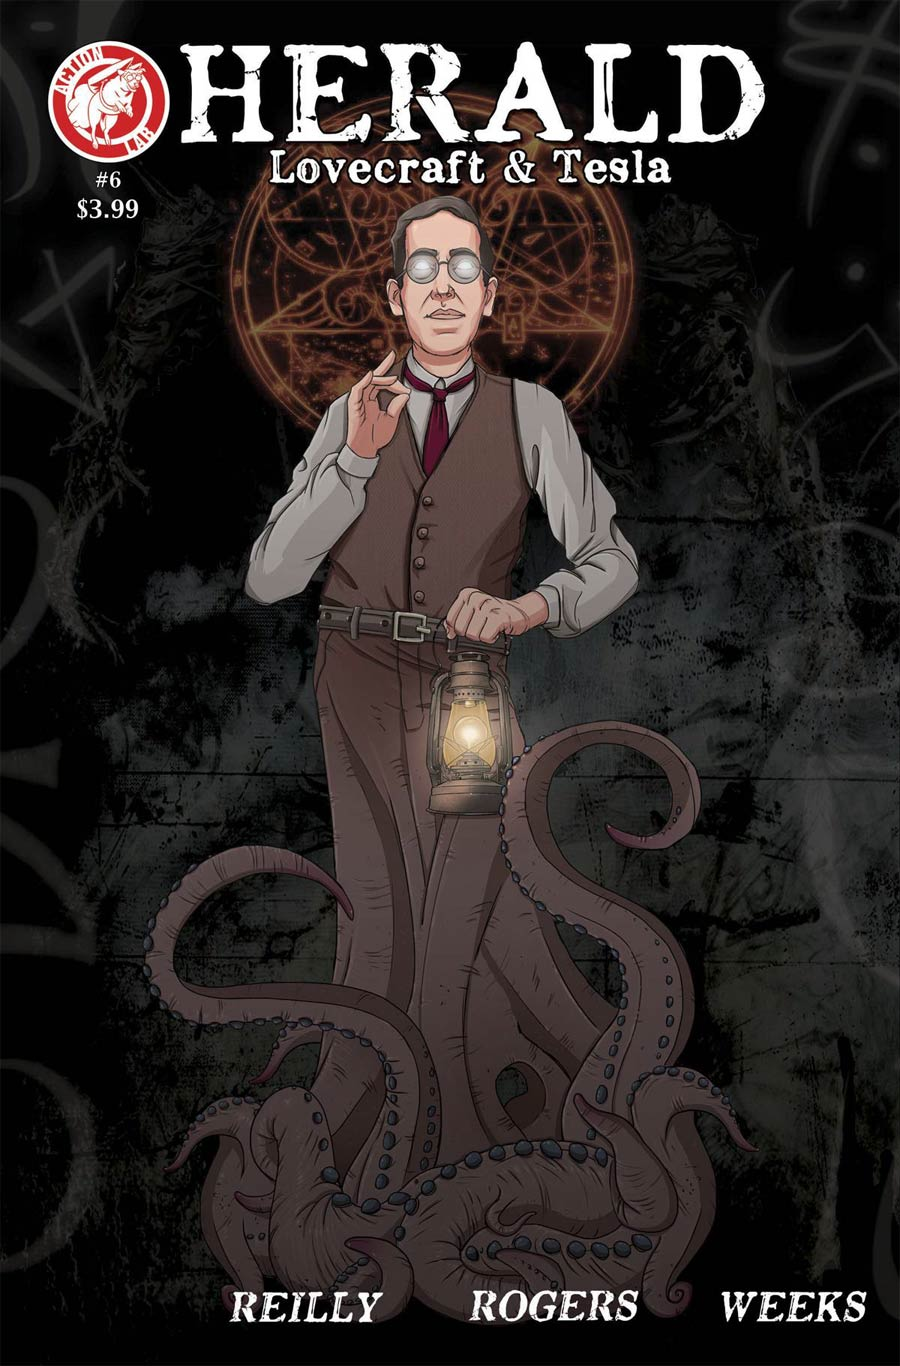 Herald Lovecraft & Tesla #6